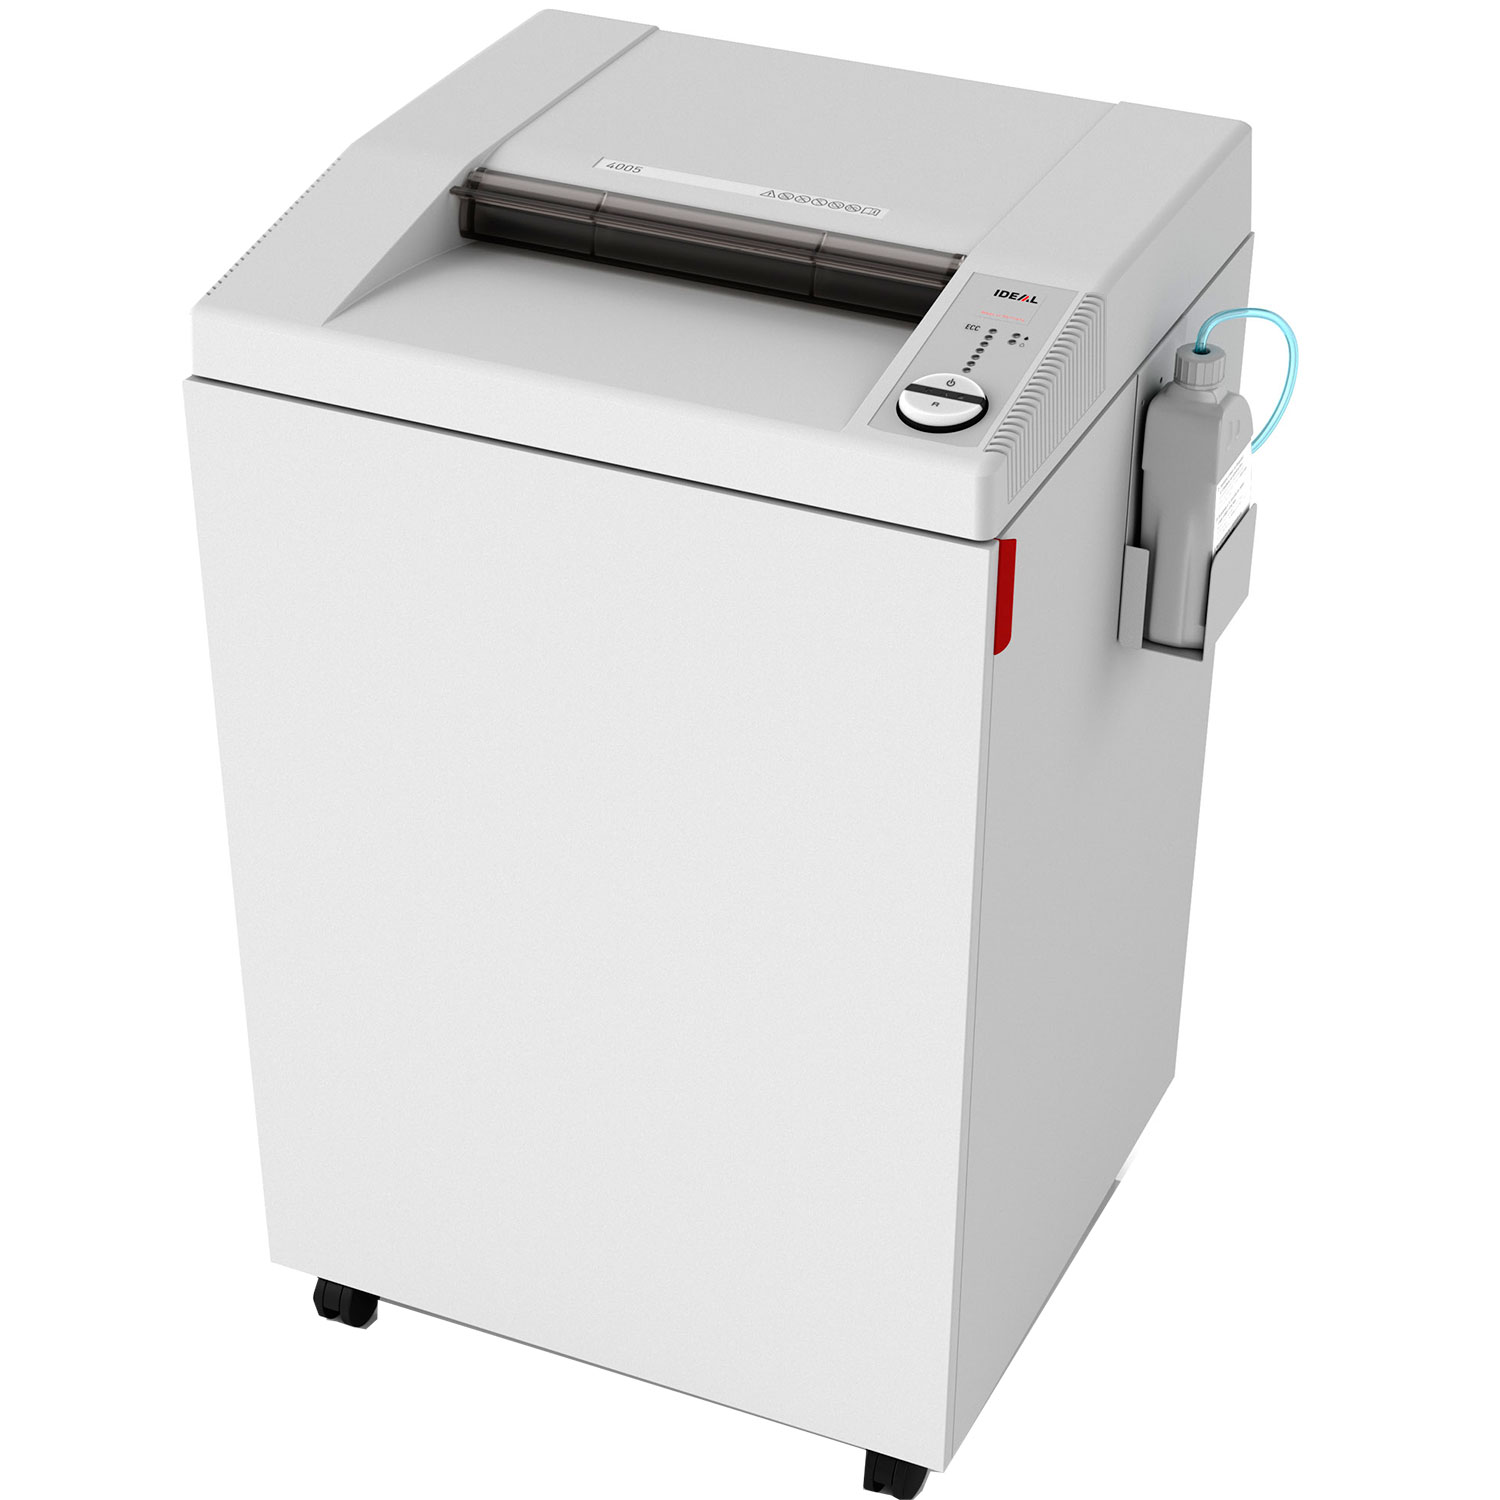 IDEAL 4005 Super Micro-Cut 0.8 x 5mm Paper Shredder